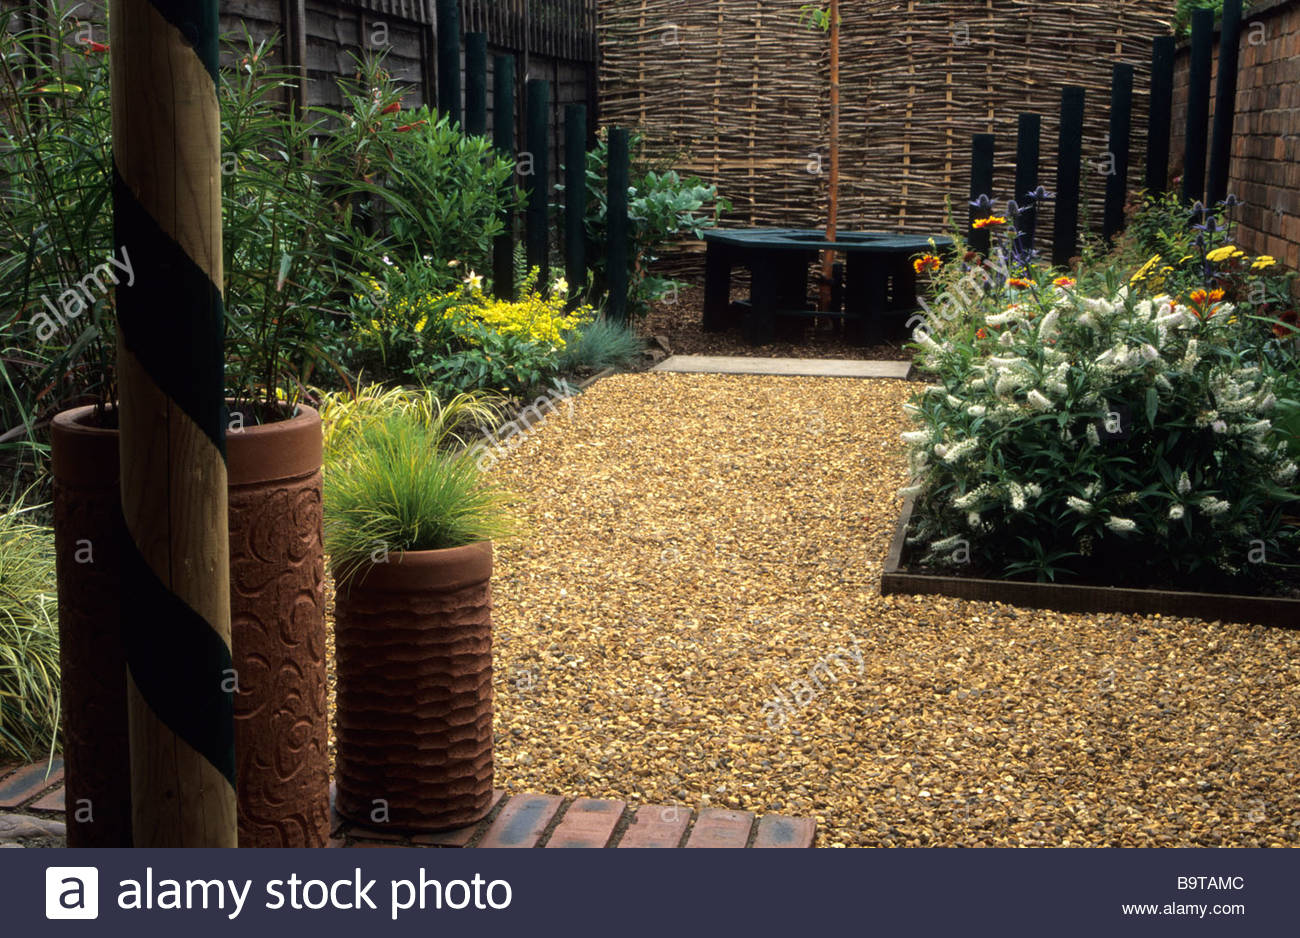 Garden Pathway Ideas Small Town Garden With Gravel Path Leading To Octagonal